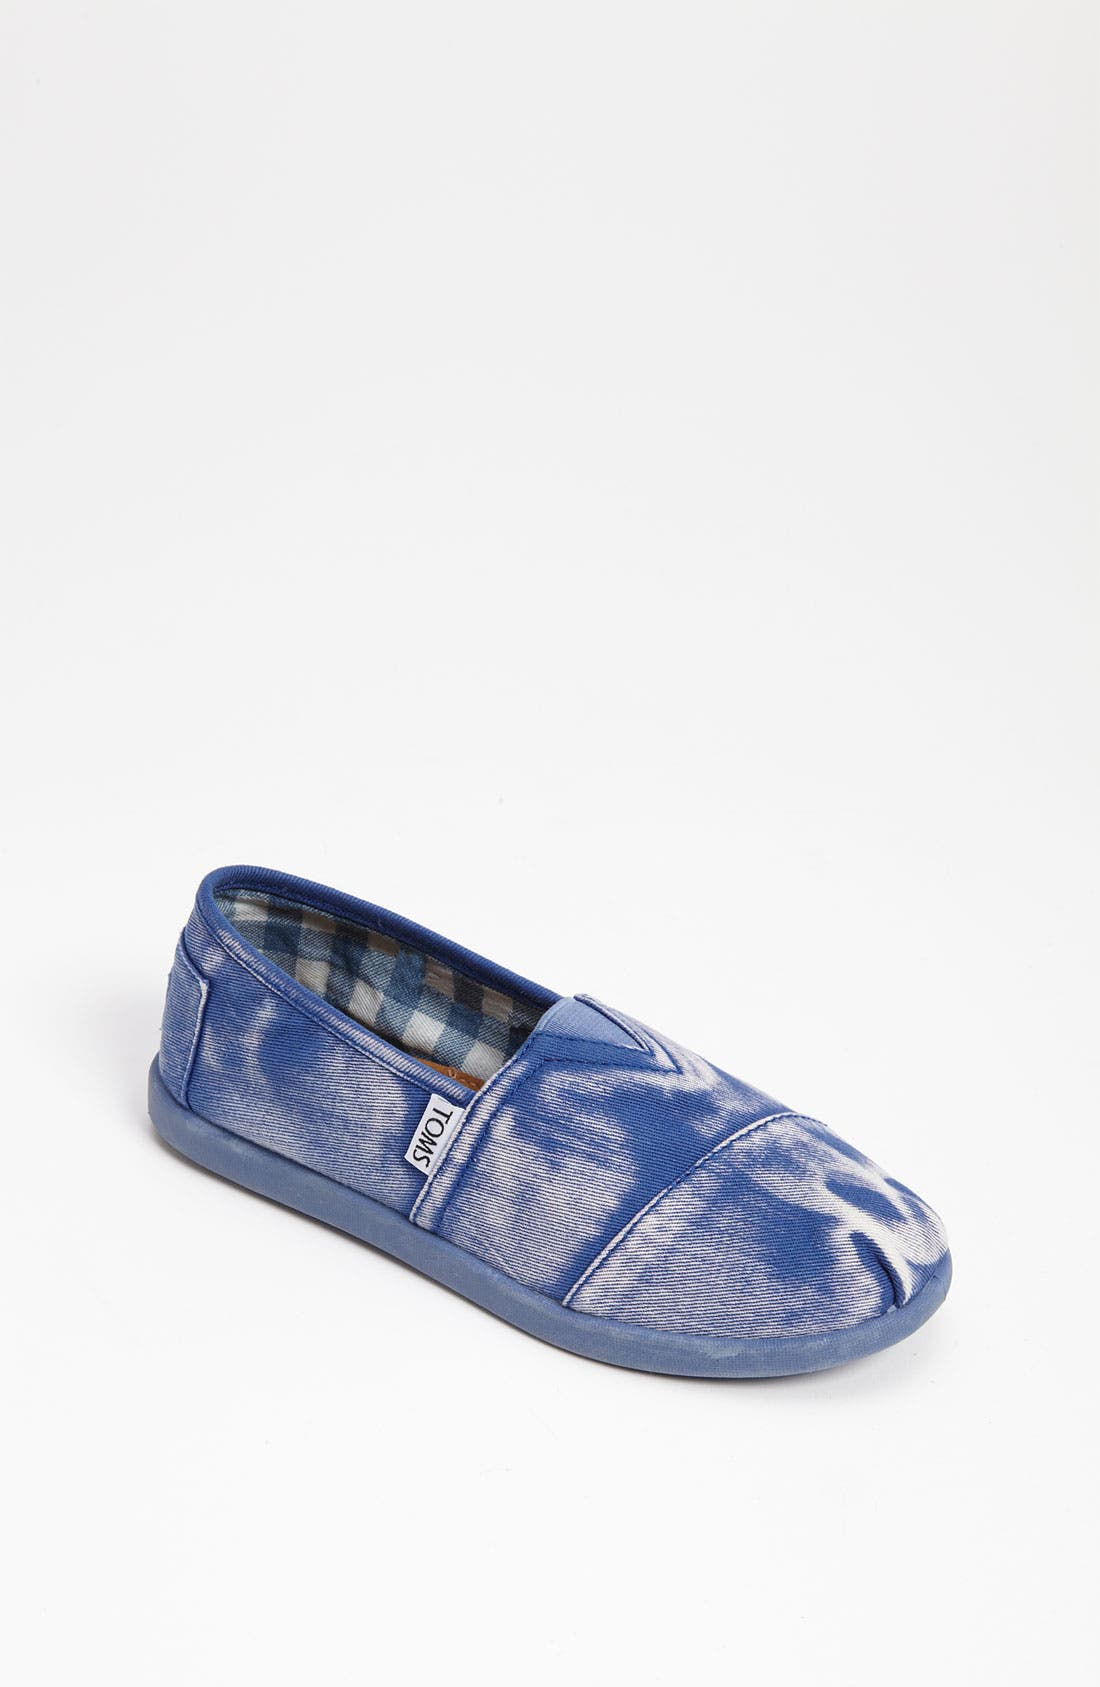 Alternate Image 1 Selected - TOMS 'Classic Youth - Palmetto' Slip-On (Toddler, Little Kid & Big Kid)